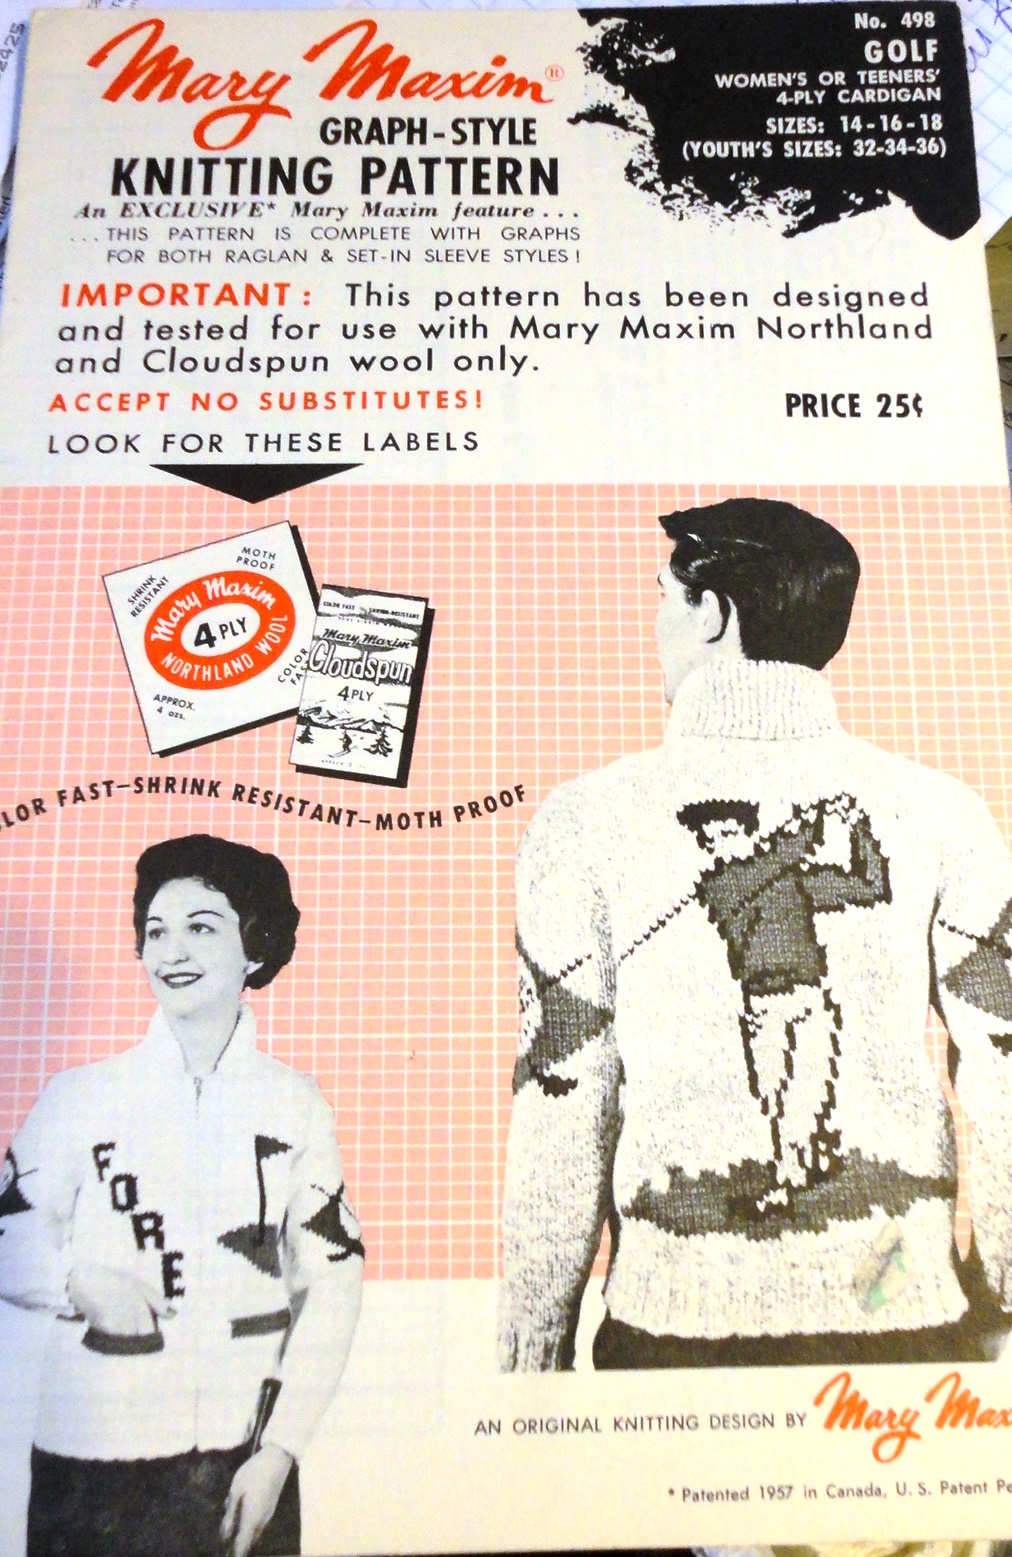 Mary Maxim 498 Golf Sweater Knitting And Crochet Pattern Archive